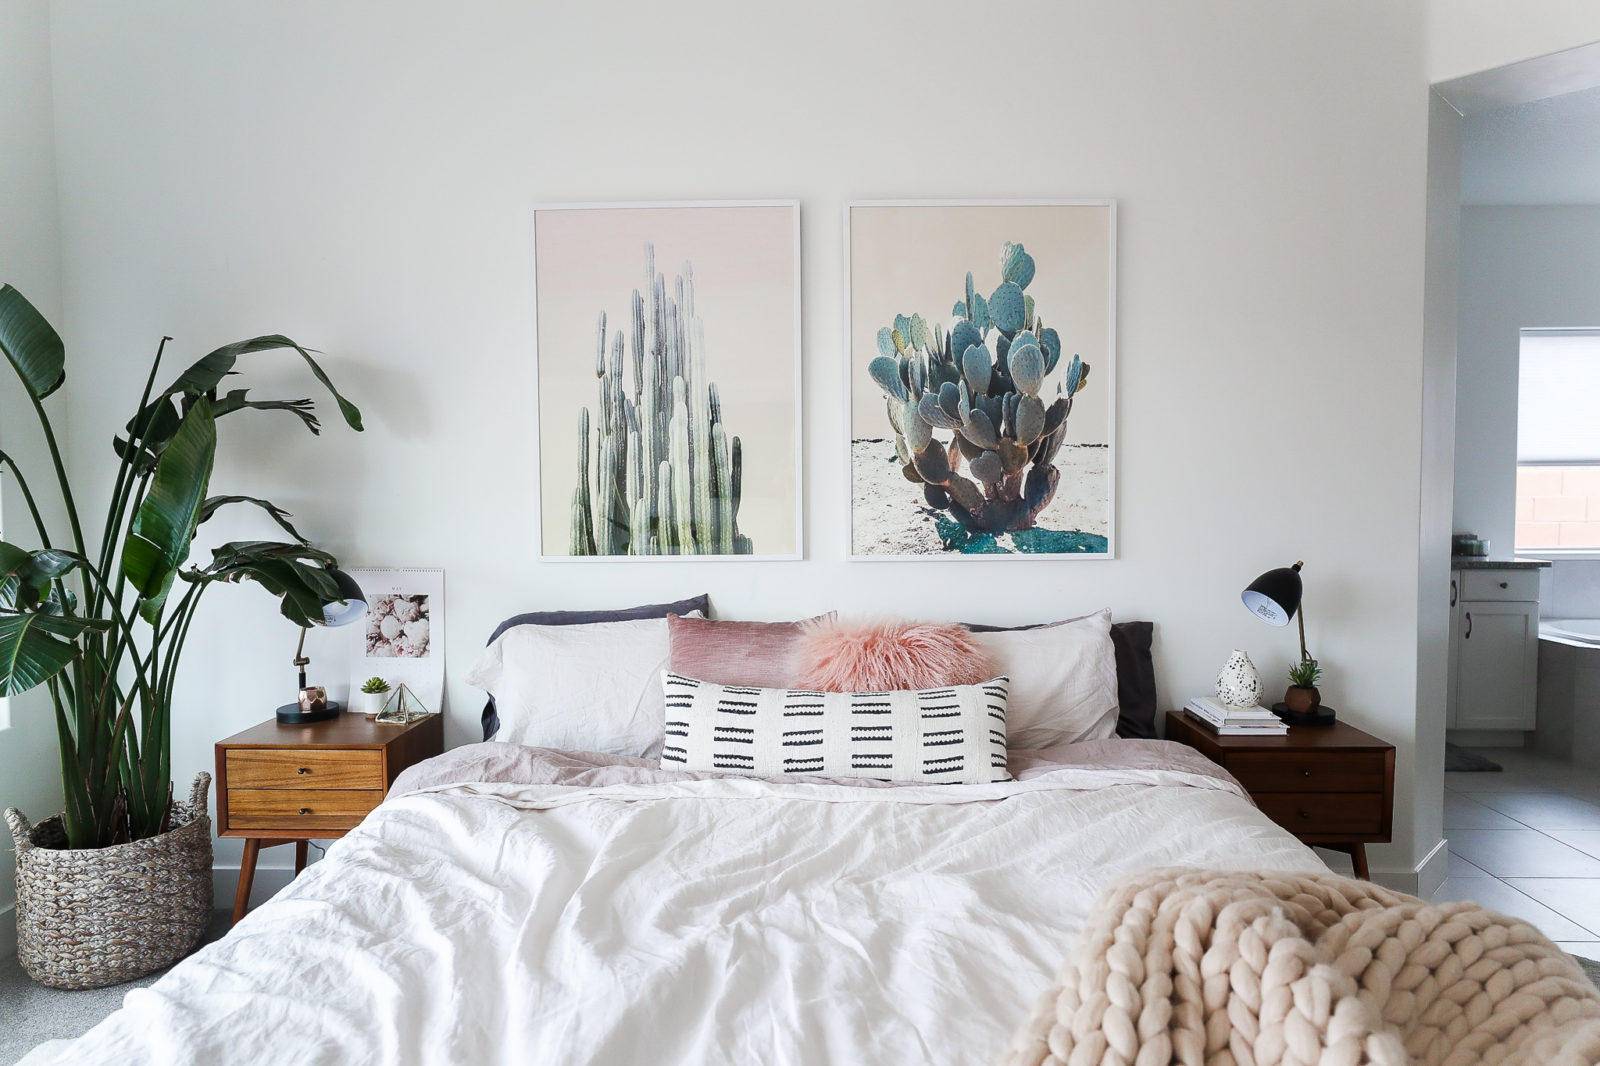 Room tour 2017 aspyn ovard bloglovin - Room decor ideas pinterest ...